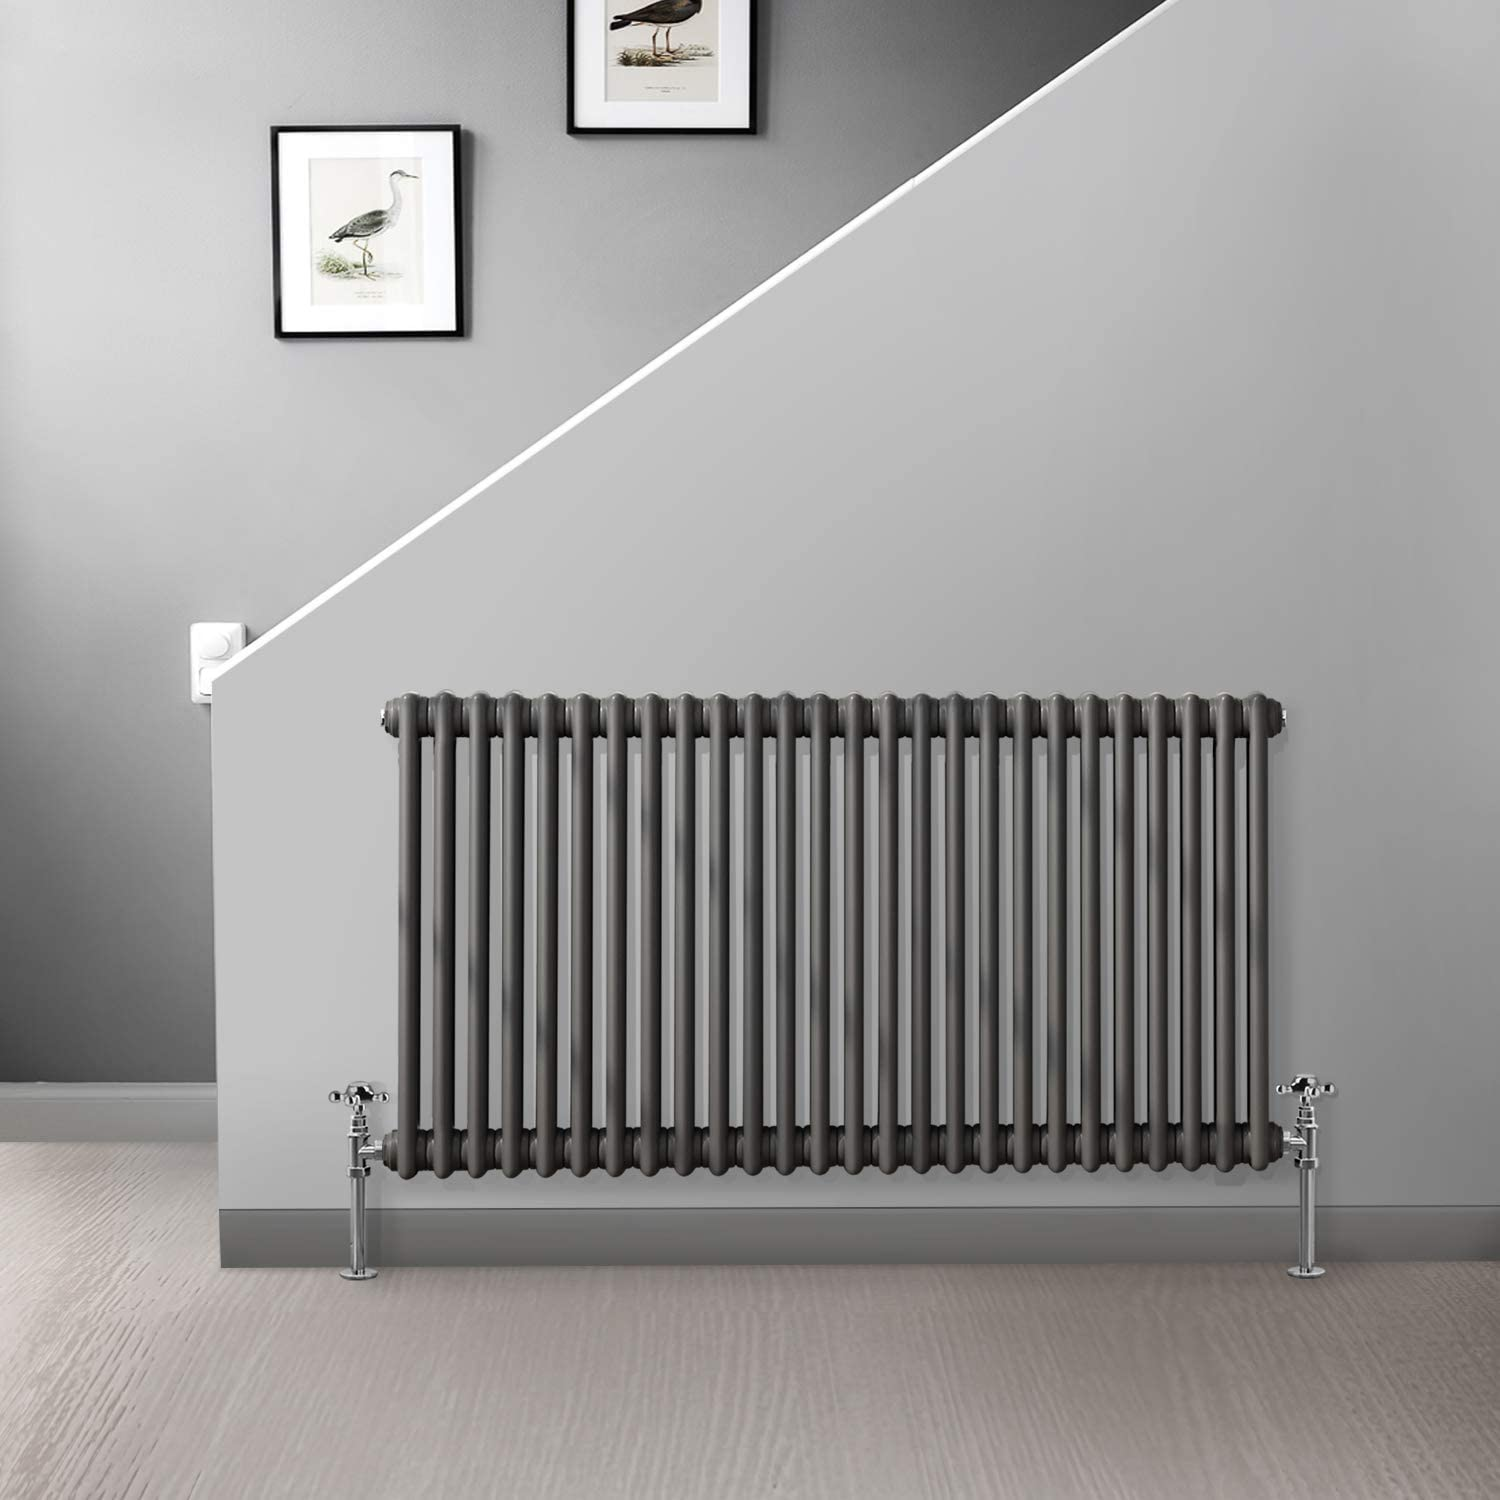 Traditional Colosseum Cast Iron Bathroom Radiator Anthracite 3 Panel